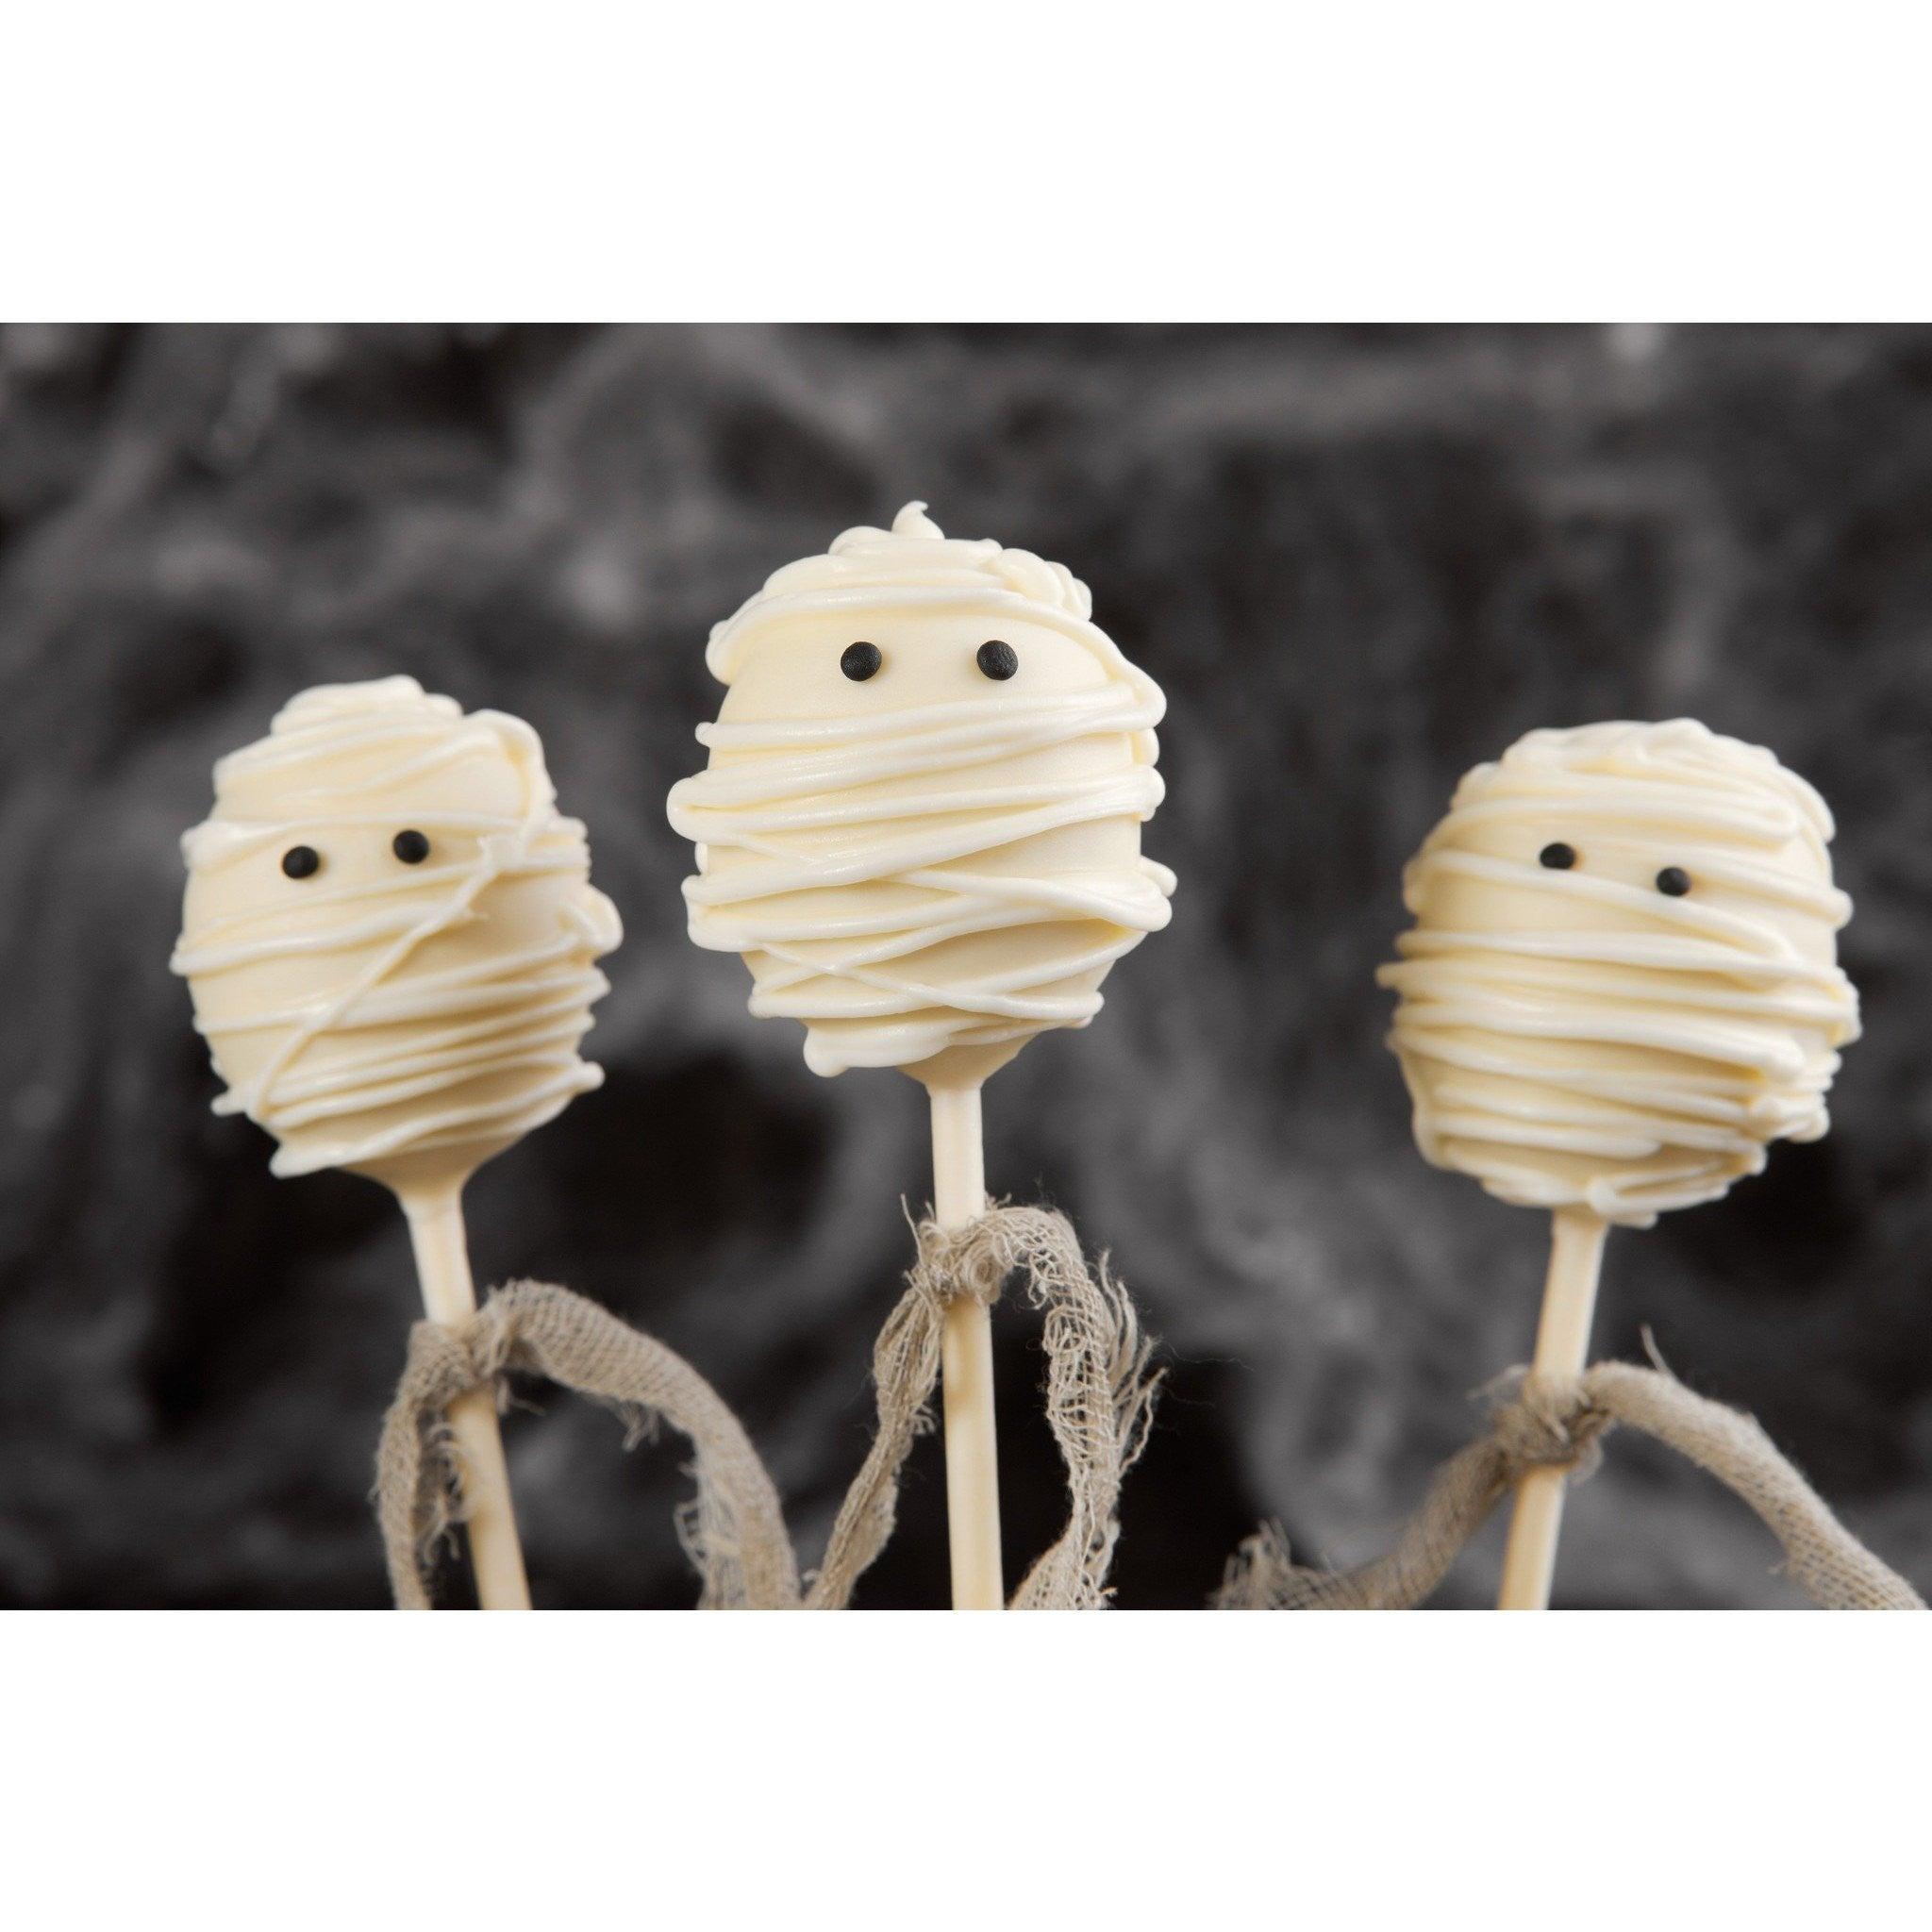 Mummy Cake Pops For Halloween - Cake Pops Parties